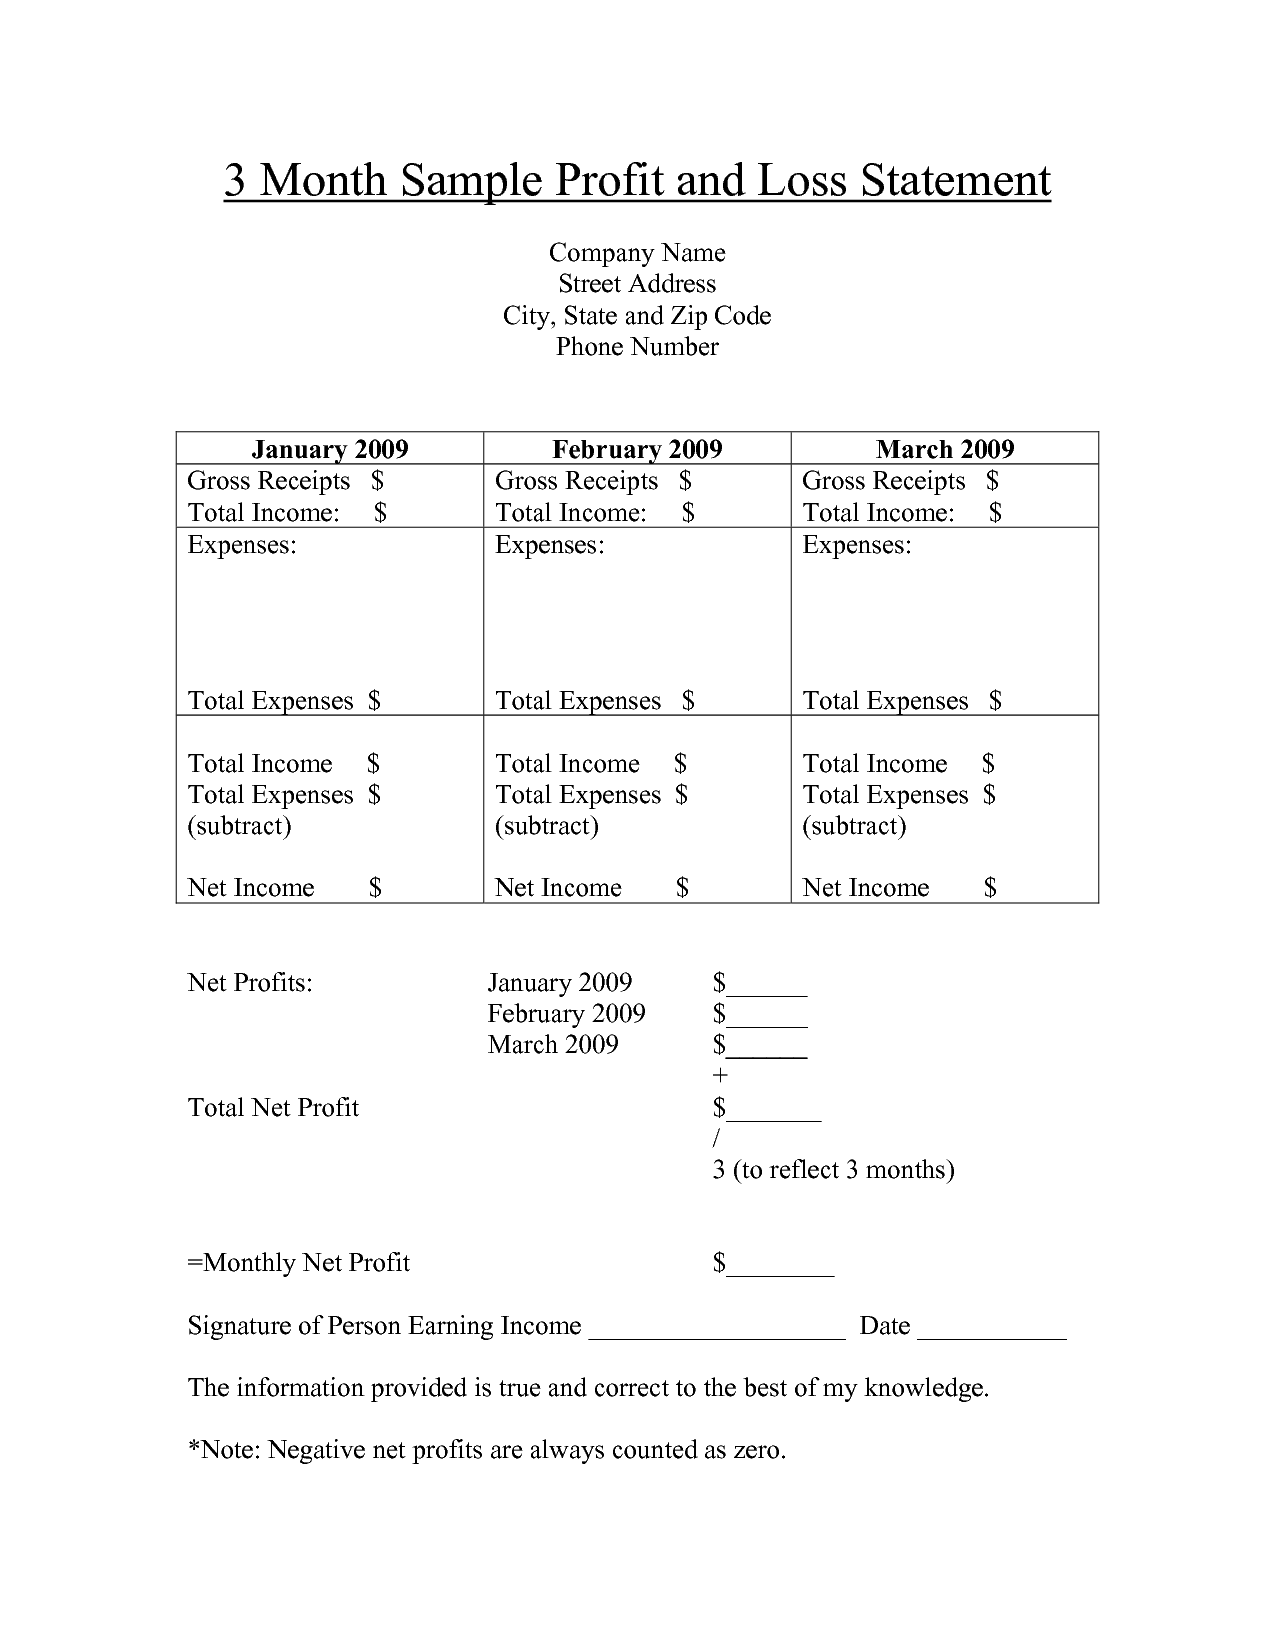 Beautiful Free Printable Profit And Loss Statement Form For Home Care   Bing Images